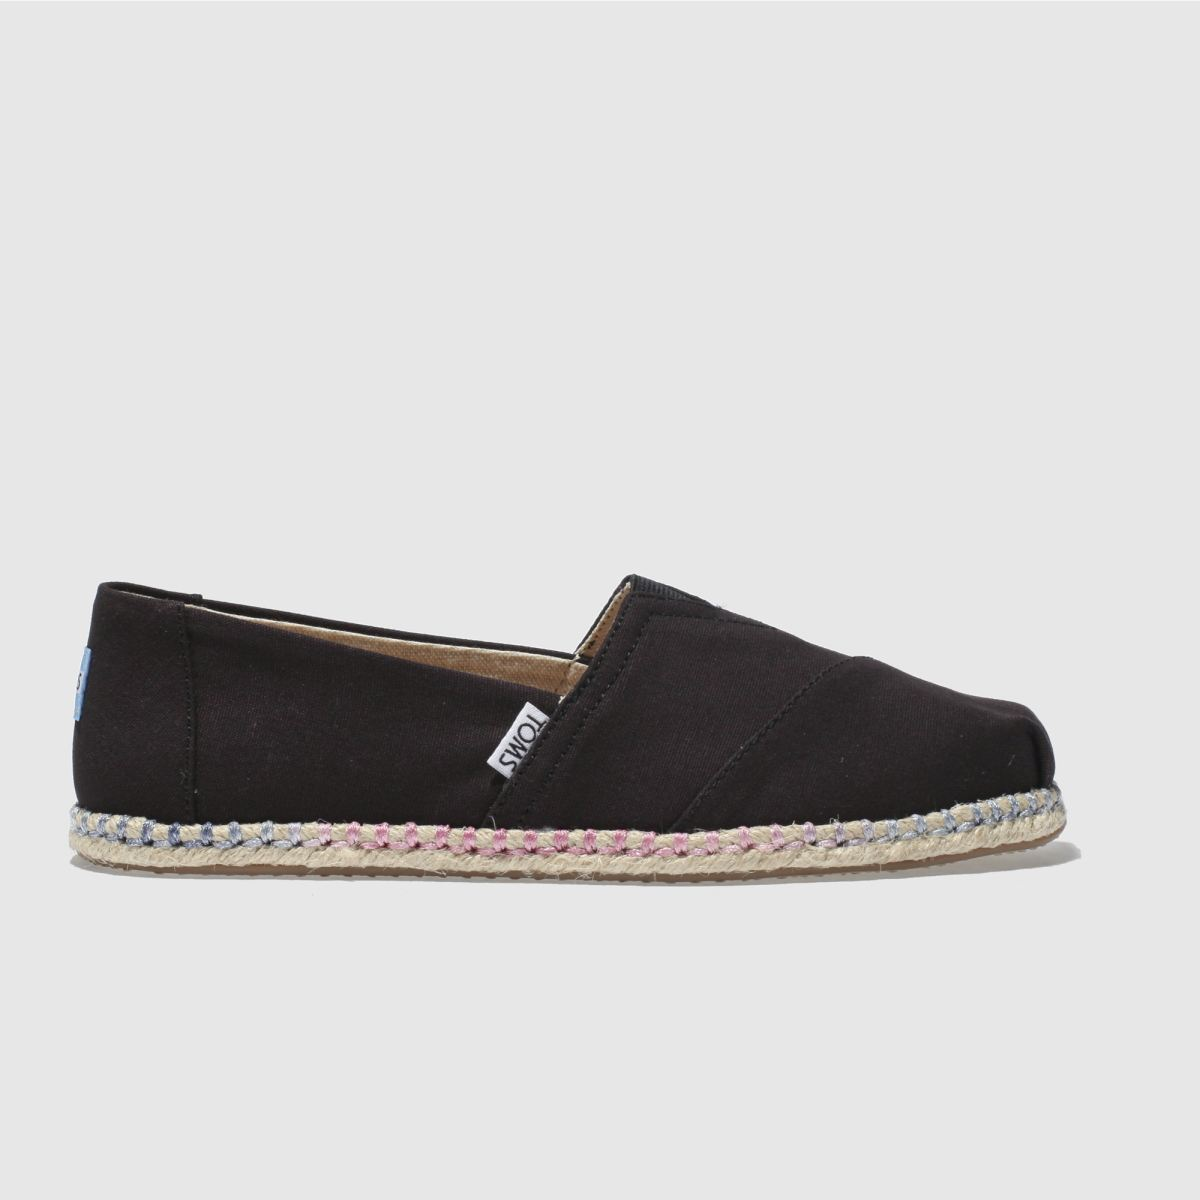 Toms Black Classic Slip Rope Sole Flat Shoes